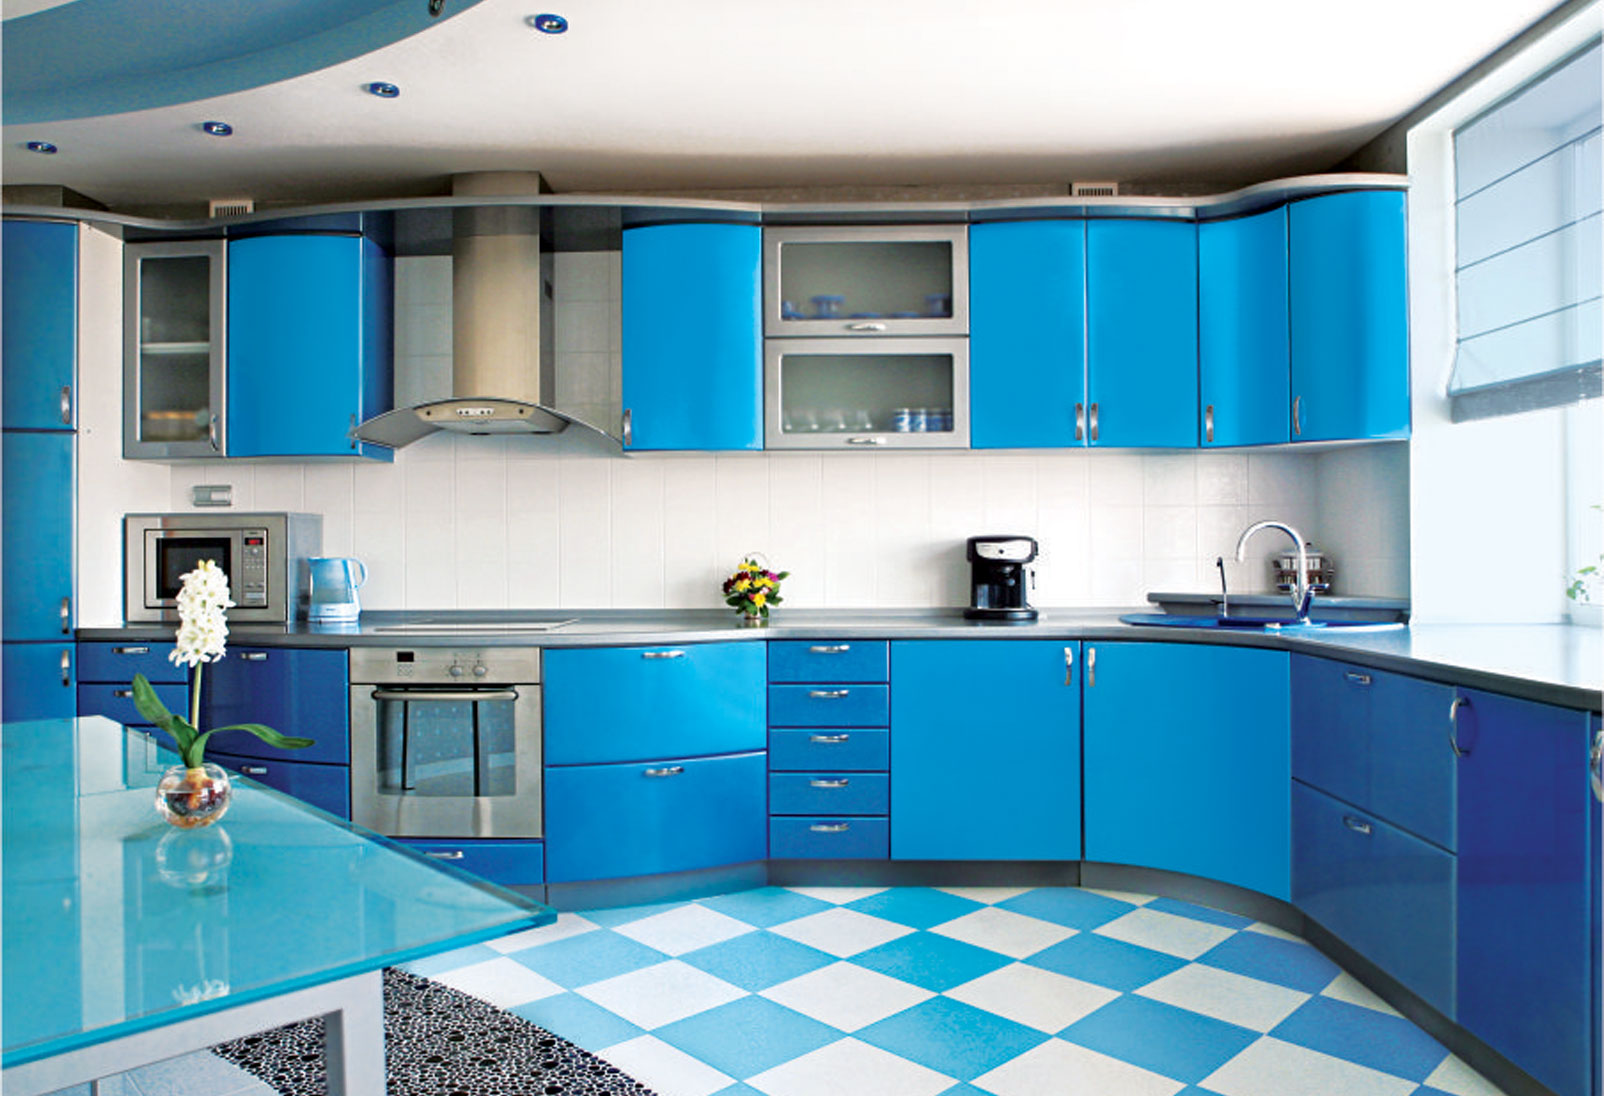 the blue modular kitchen looks cool and trendy for some days but you get bored with it very soon that is why we suggest to choose colorful kitchens only